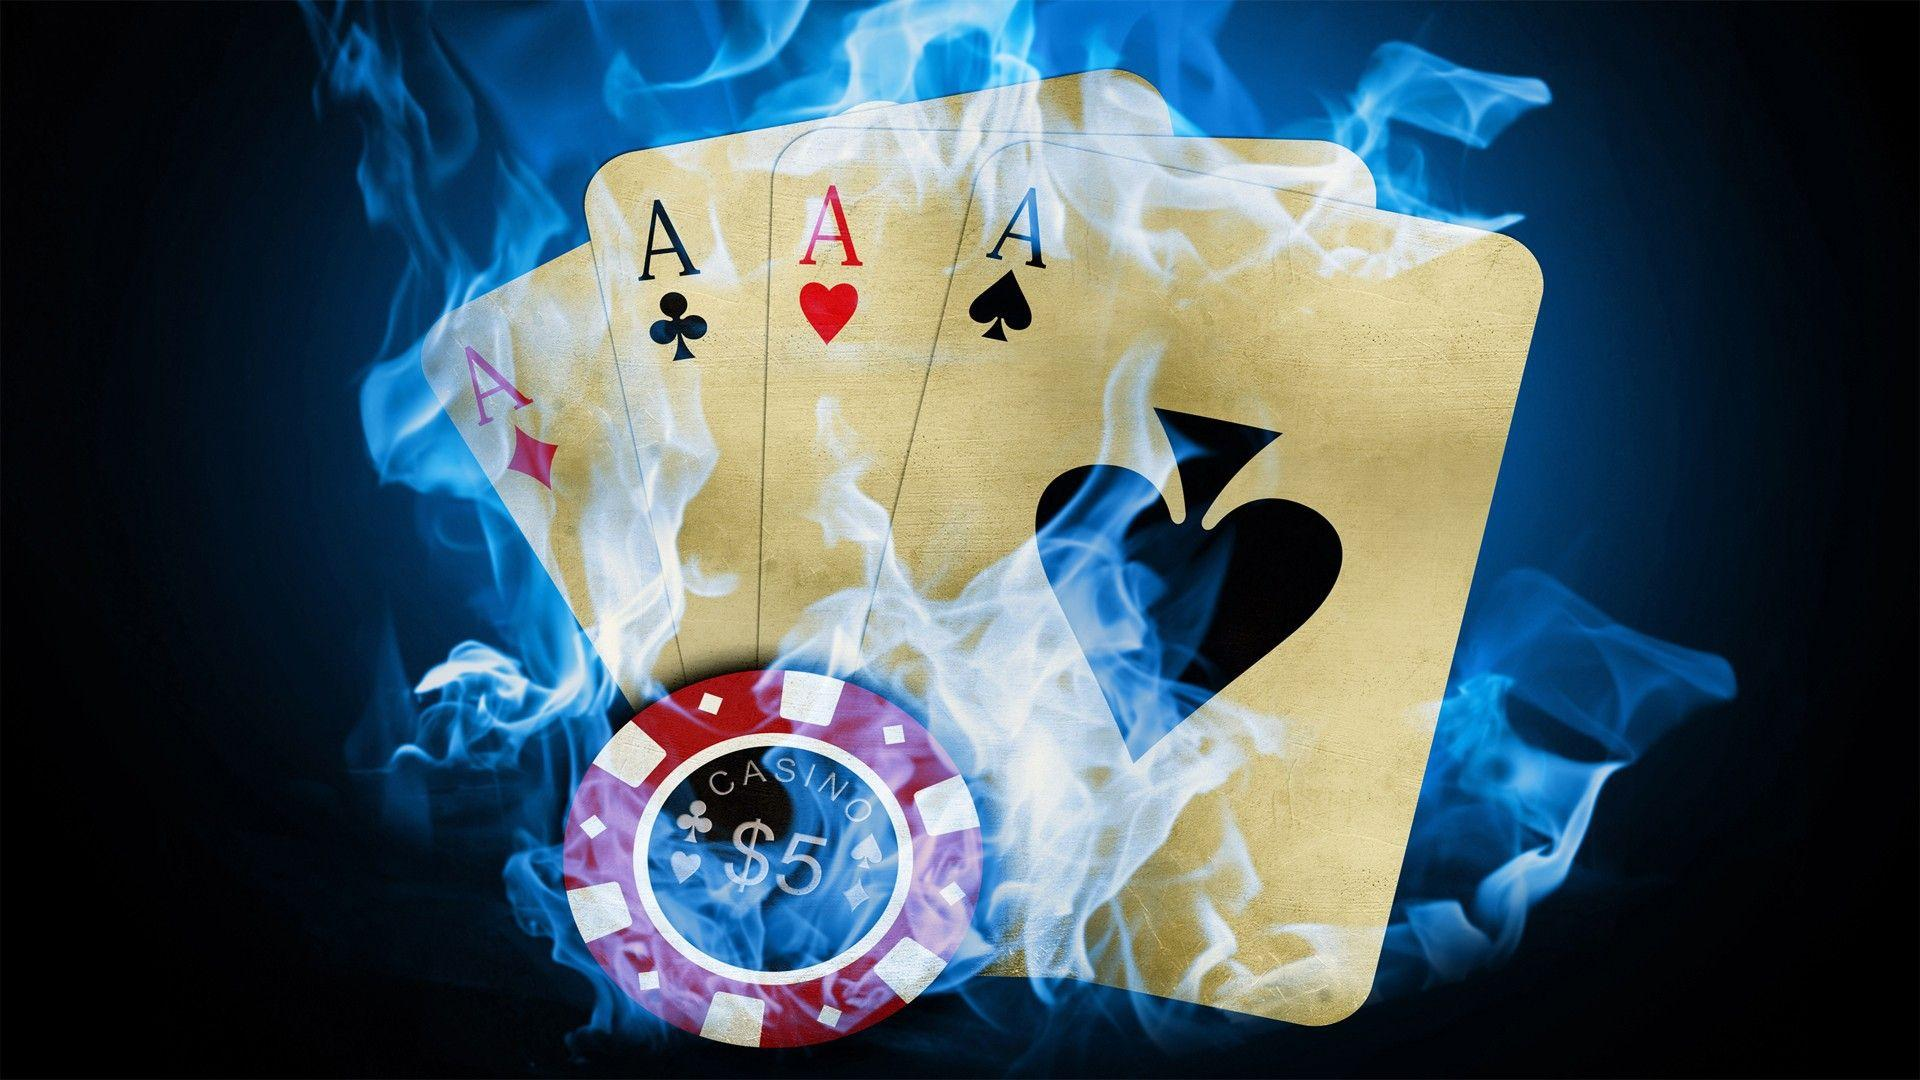 The Primary Question It's Essential To Ask For Online Gambling